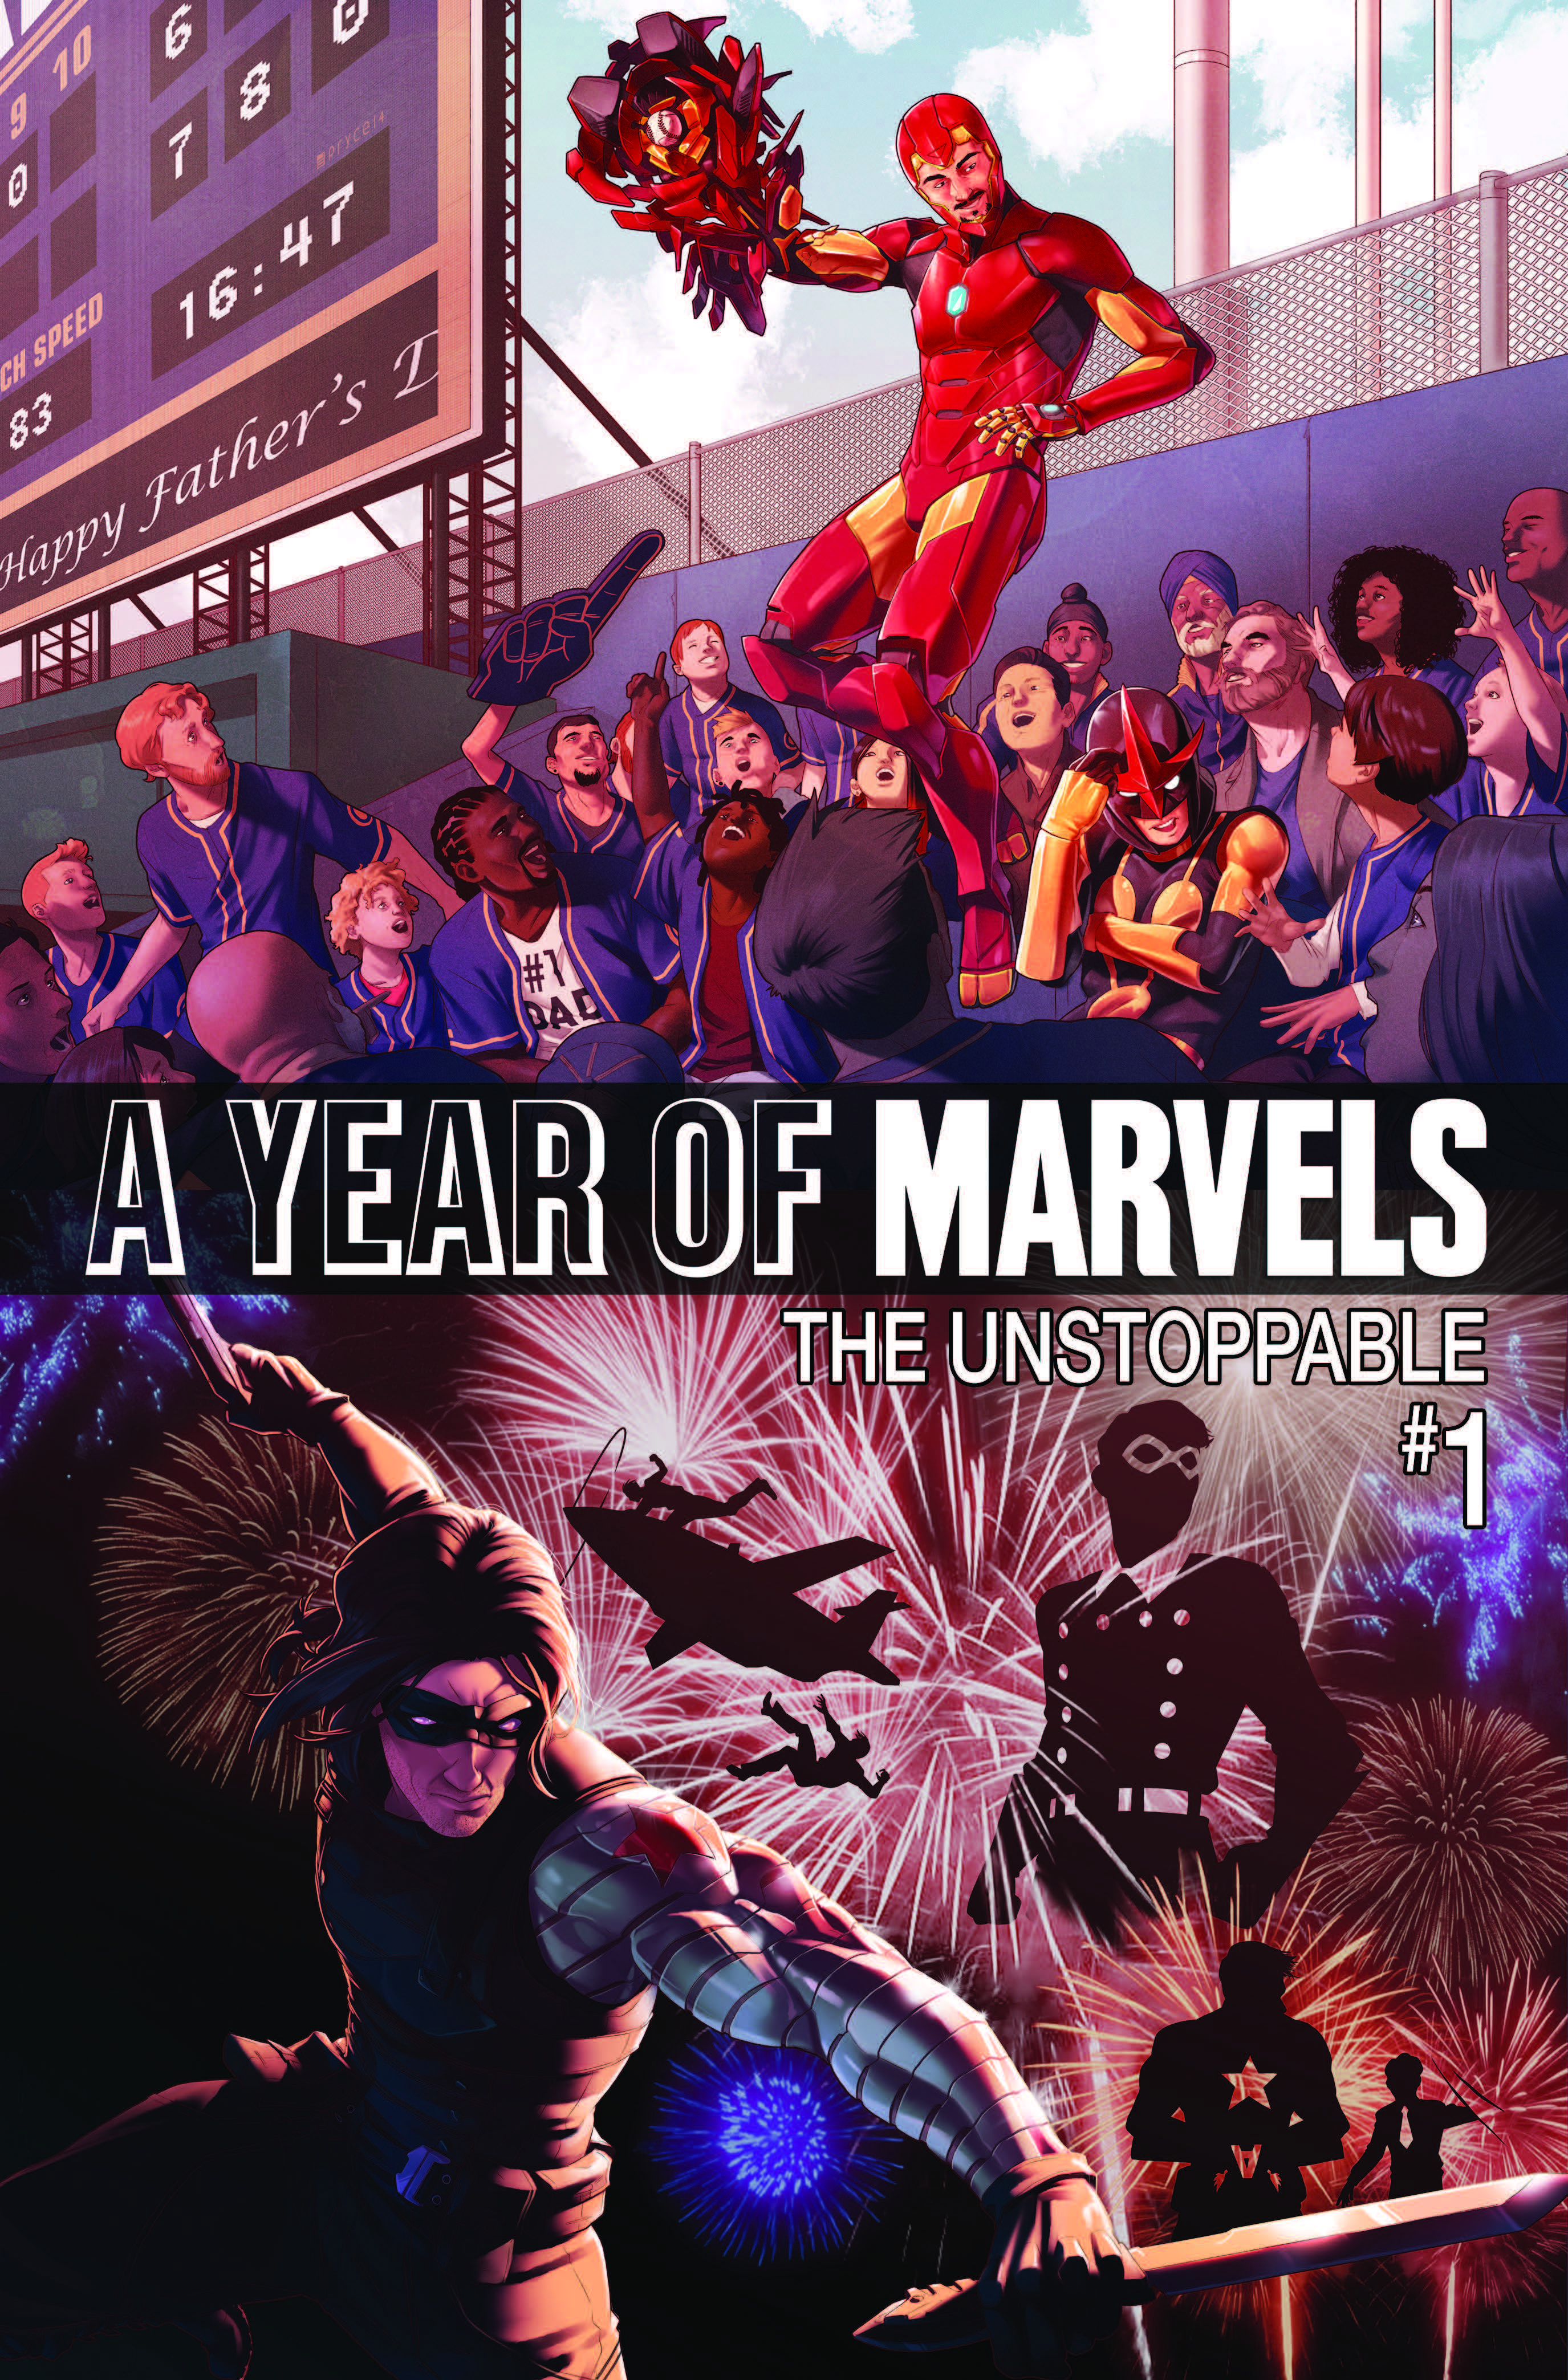 A Year of Marvels: The Incredible (2016) #3